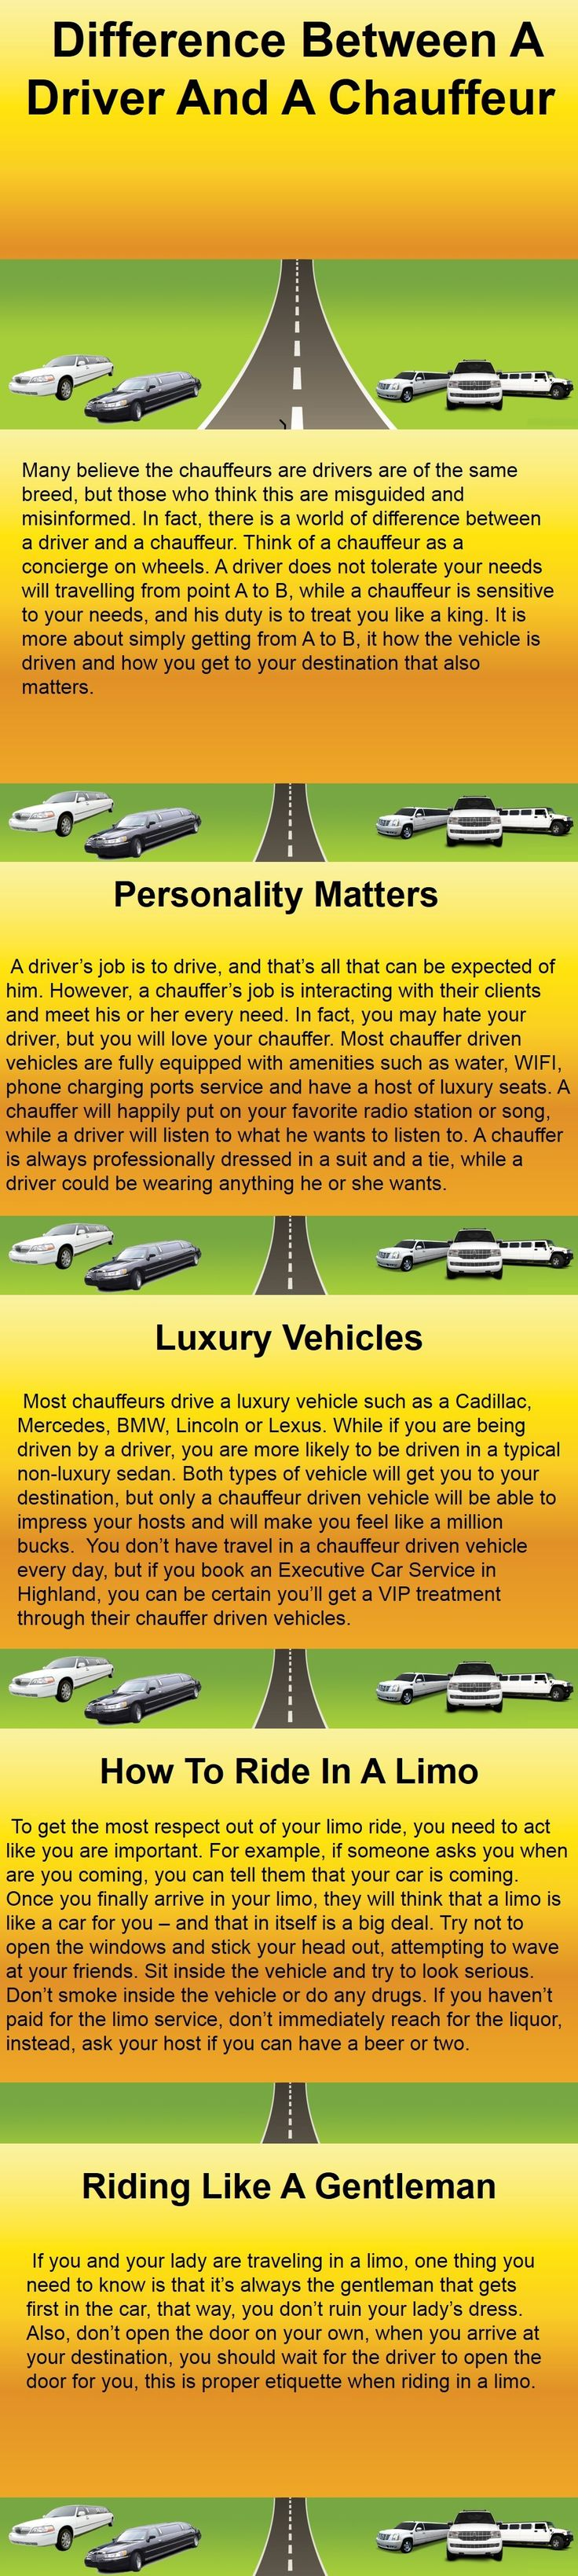 Our Limo And Luxury Transportation Services Are Well Equipped With The  Latest Tech Features Needed